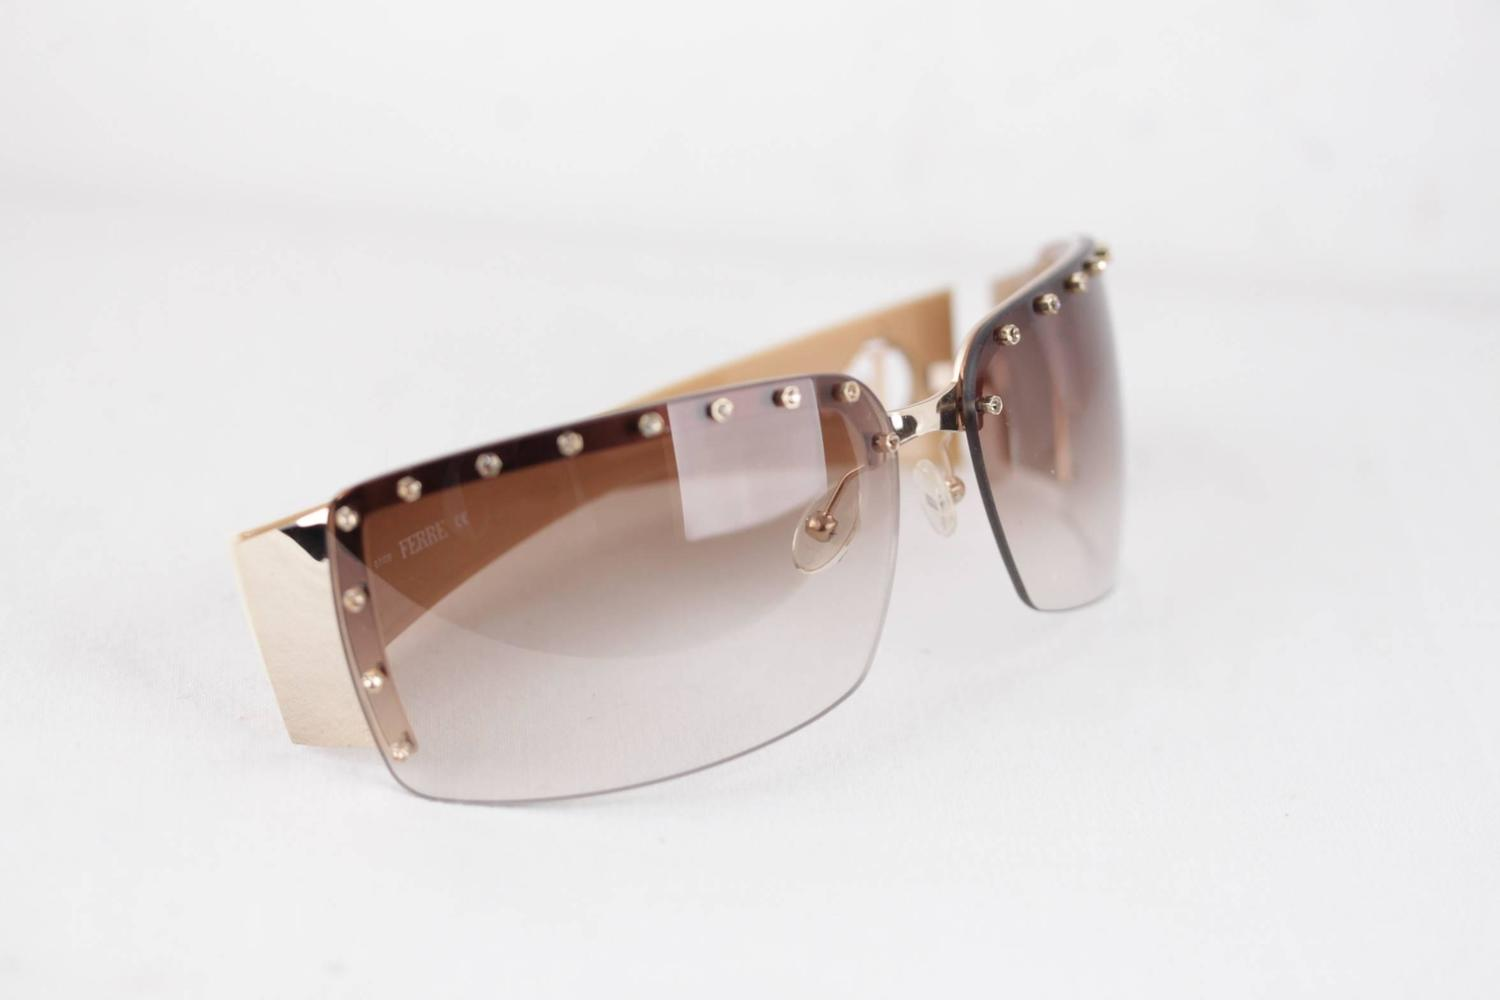 GIANFRANCO FERRE Rimless SUNGLASSES GF81301 71/14 Shades w ...